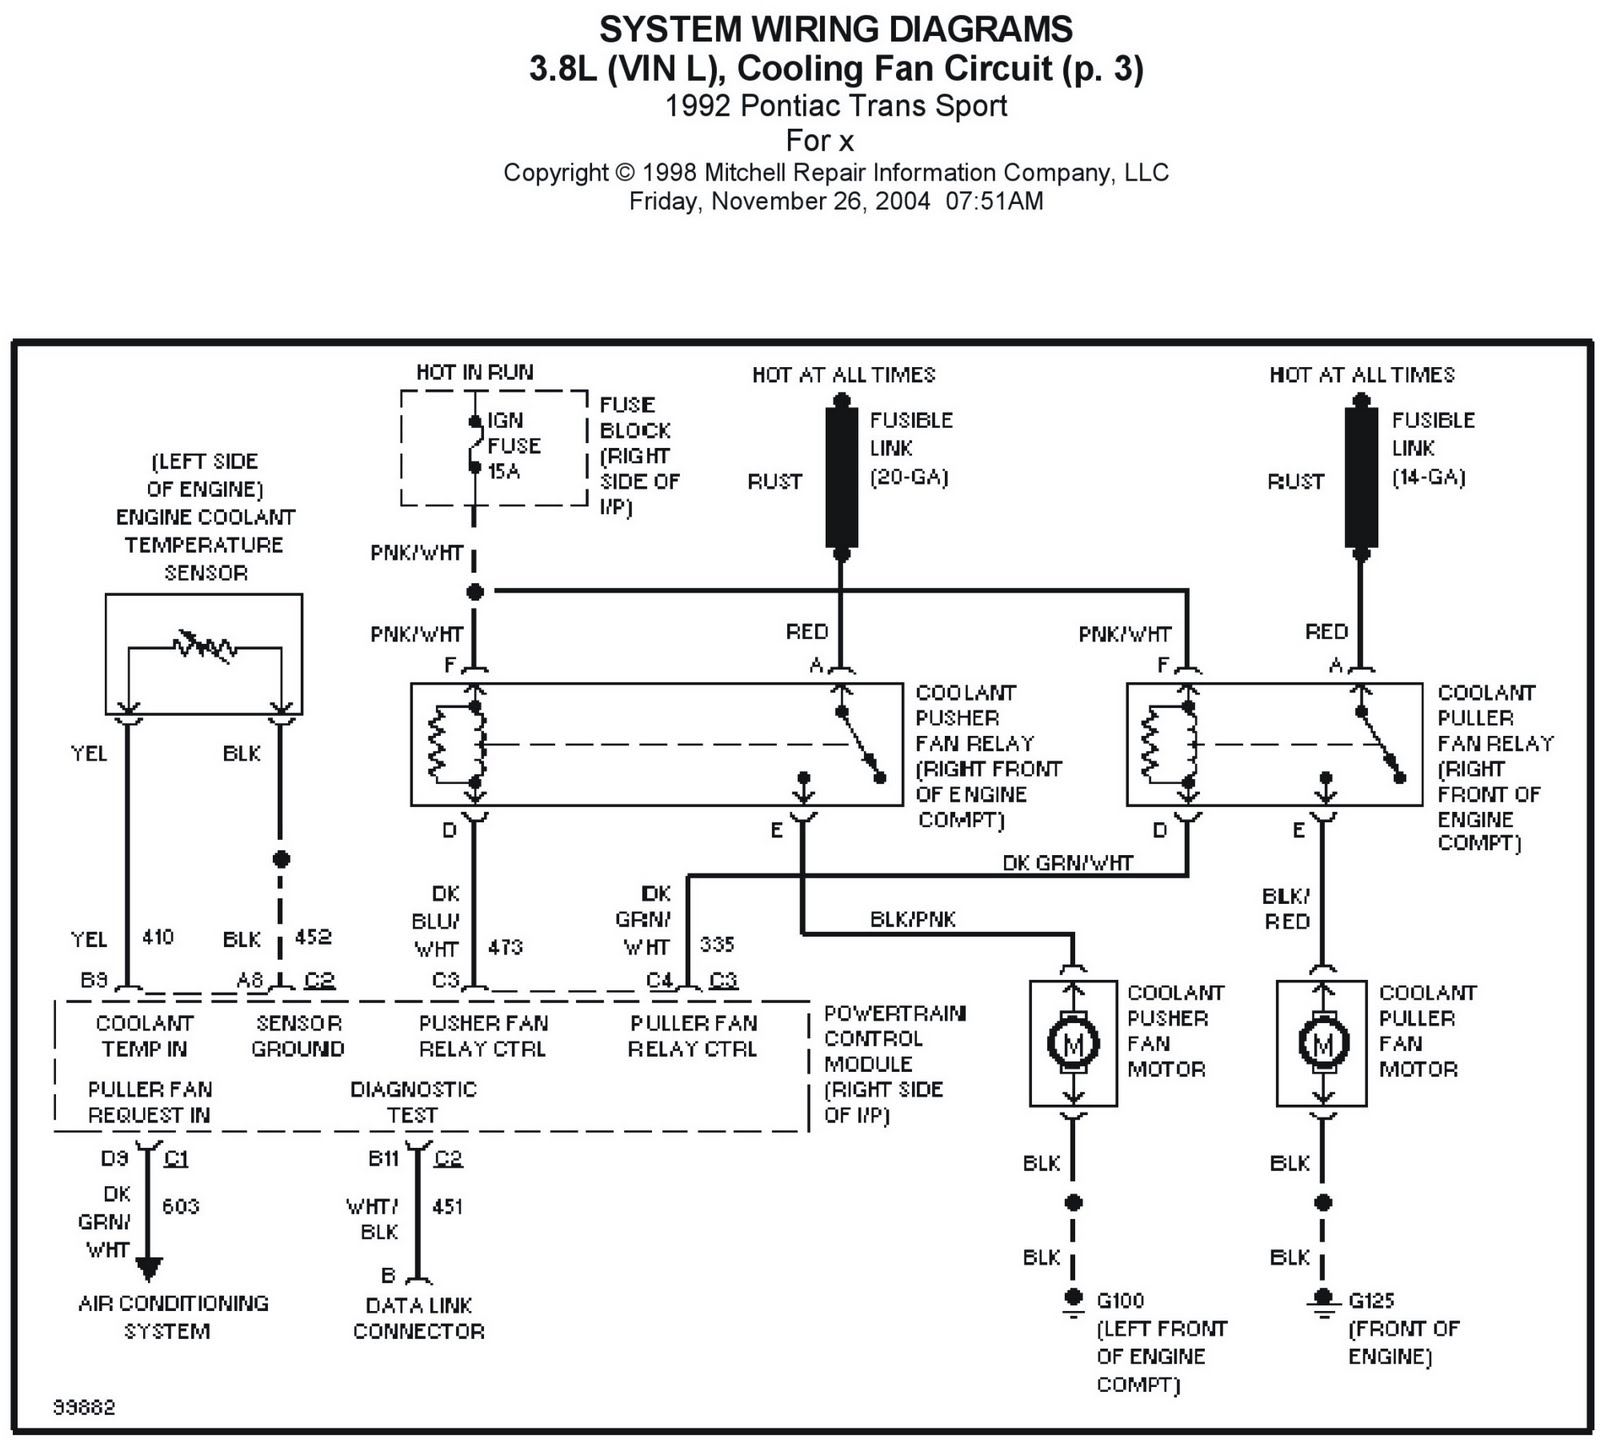 hight resolution of wiring diagram for 2002 trans am wiring schematic1995 trans am fuse diagram wiring library 1980 trans